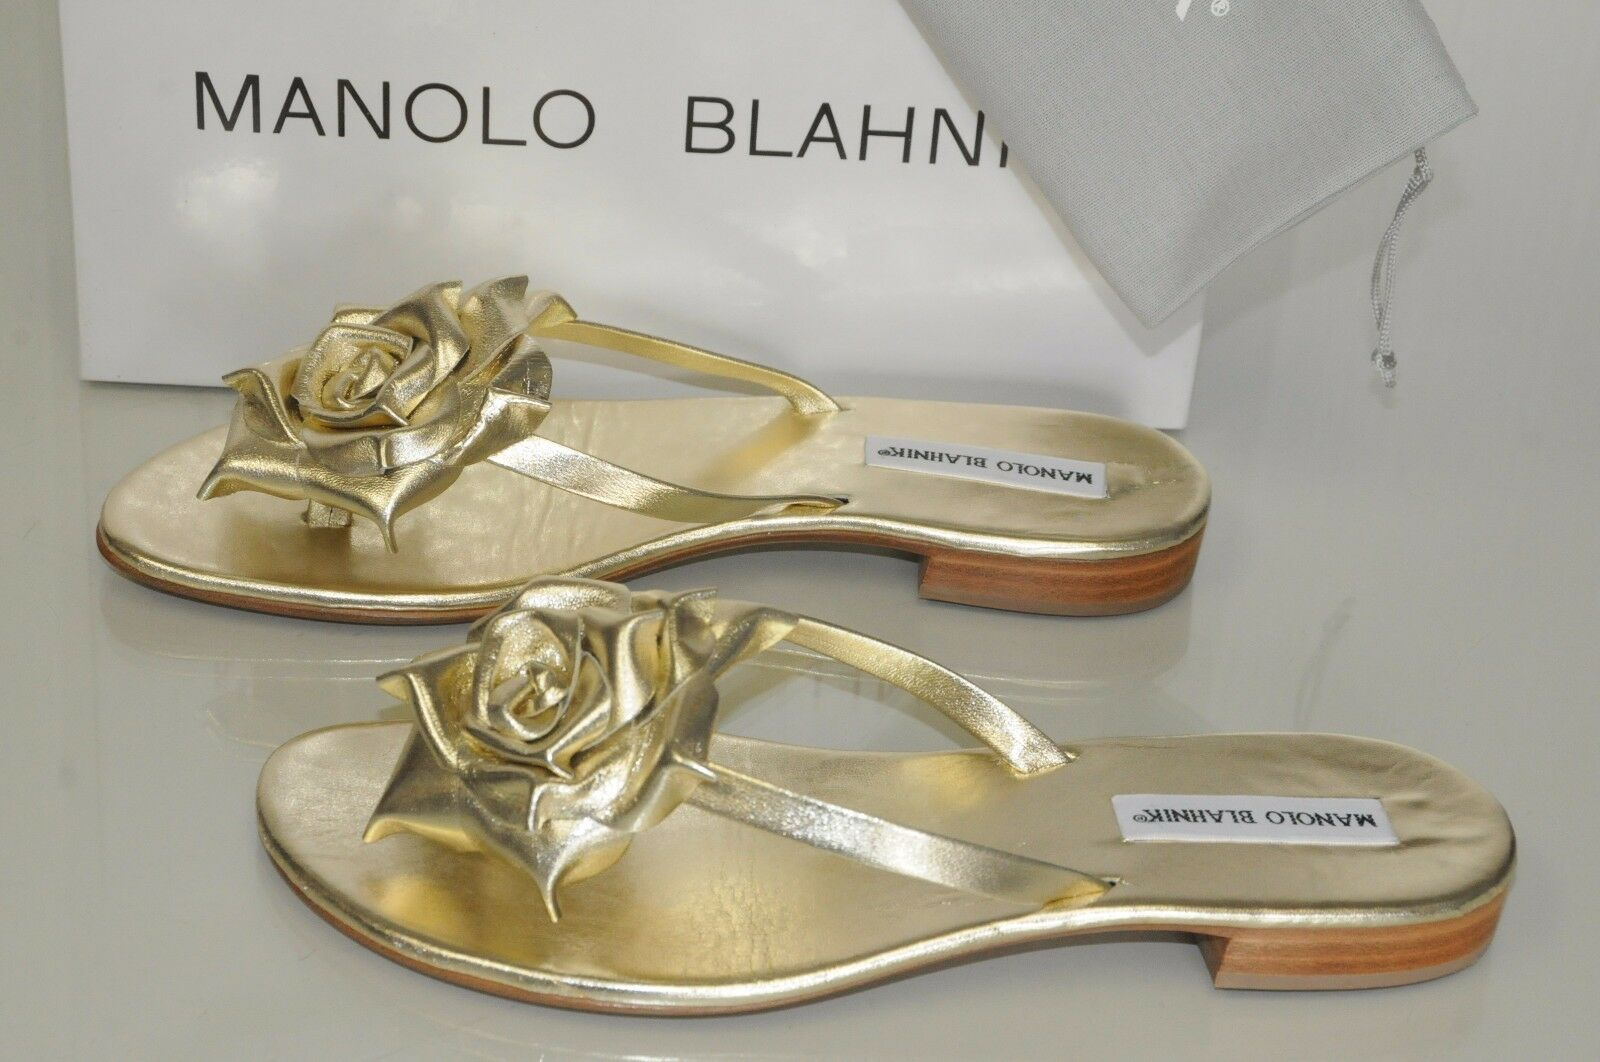 735 New Manolo Blahnik Patricia gold Leather Thong Flats Sandals shoes 40.5